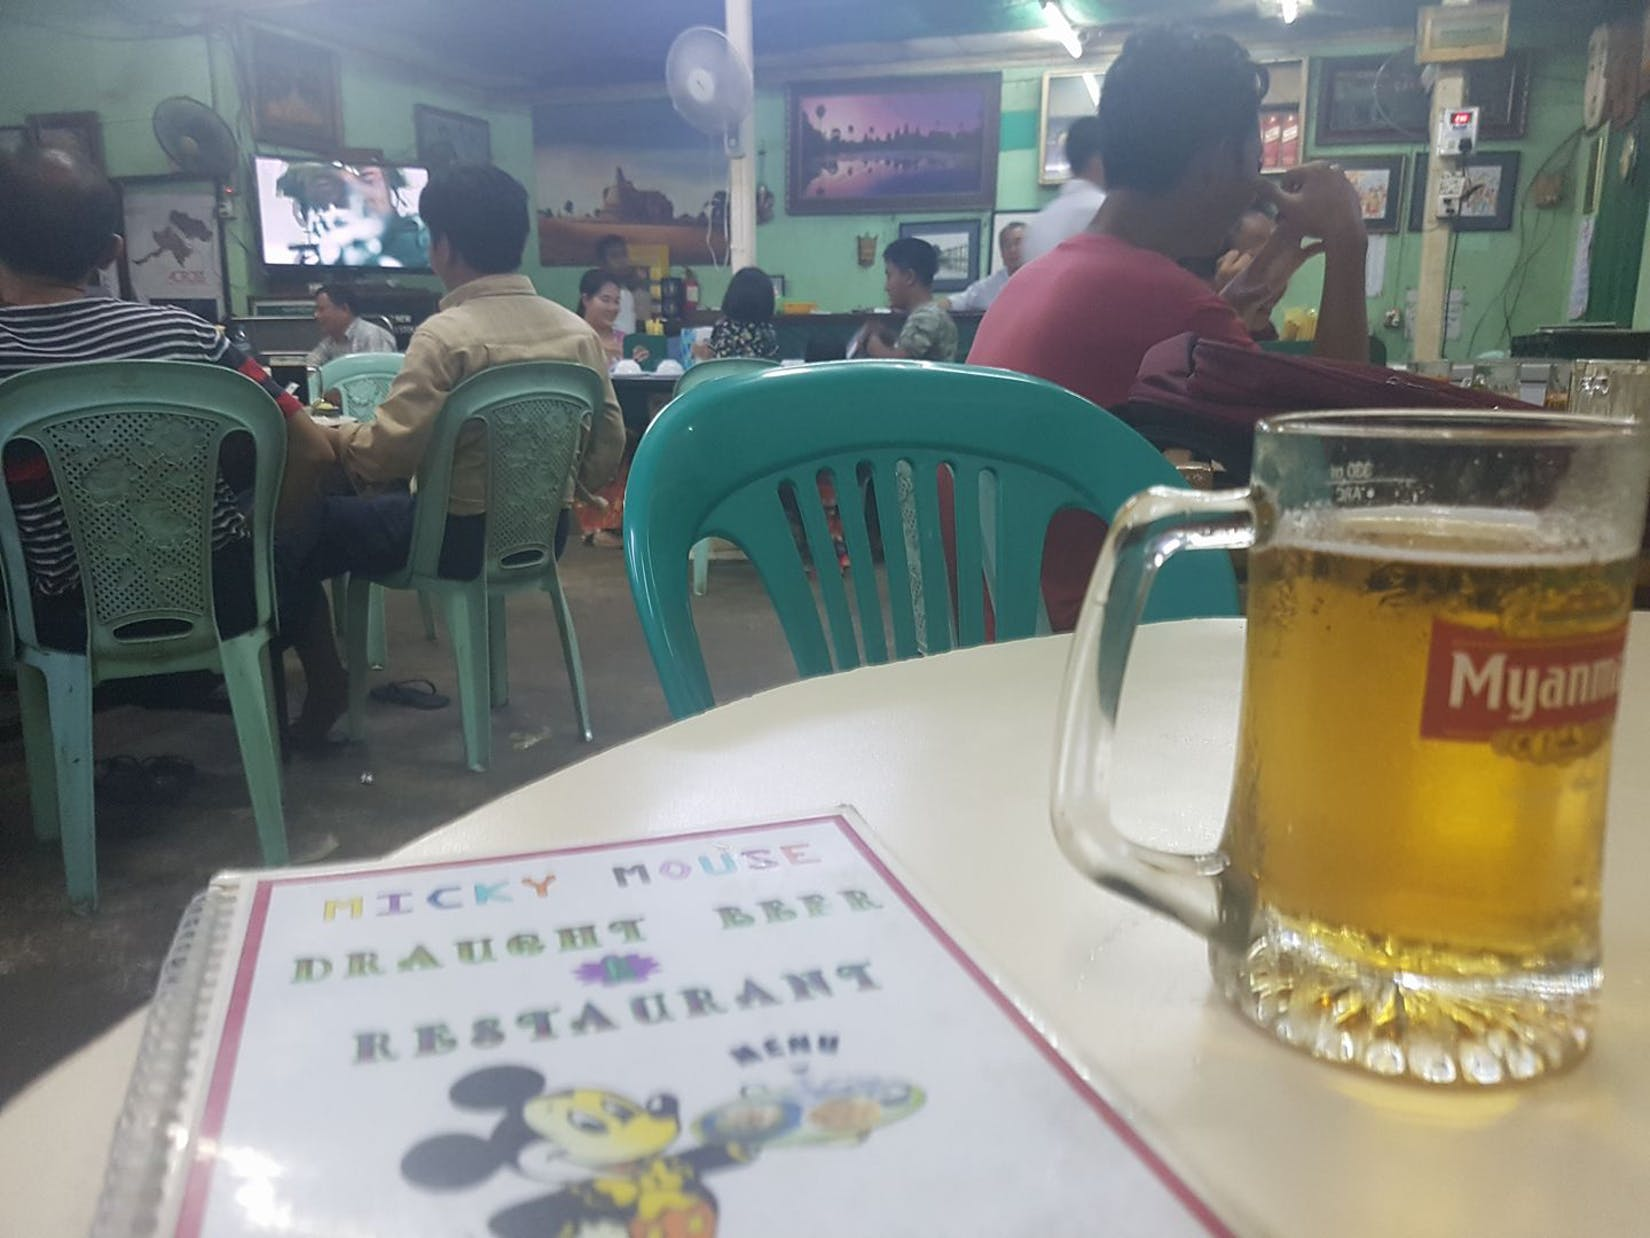 Micky Mouse | yathar